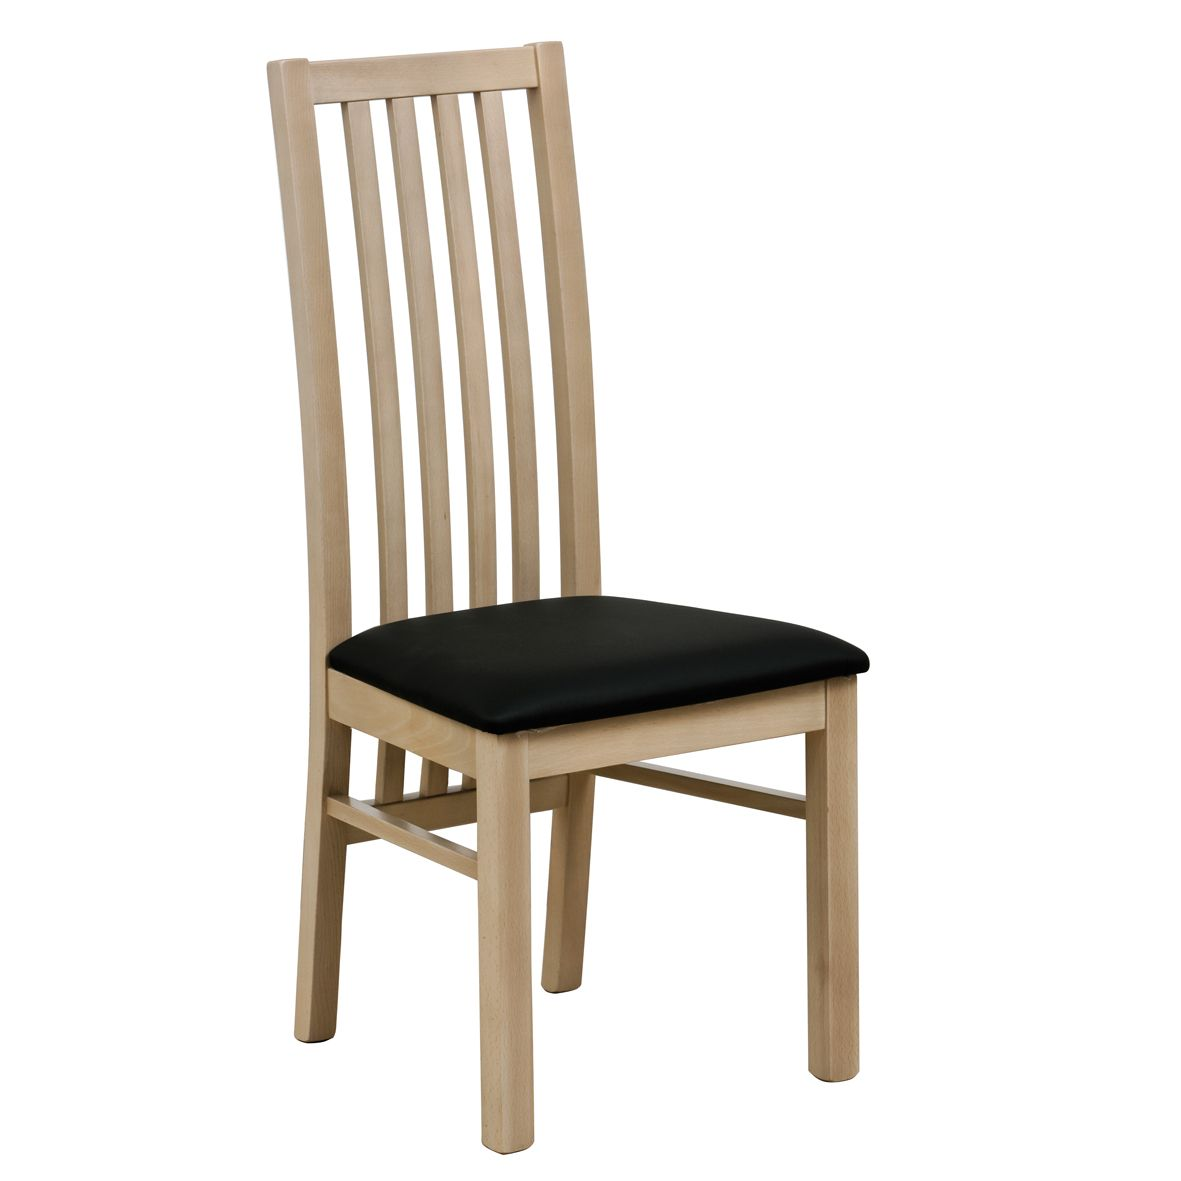 Dining Chair Price Compare Millions Of Dining Chair Prices From The Most Trusted